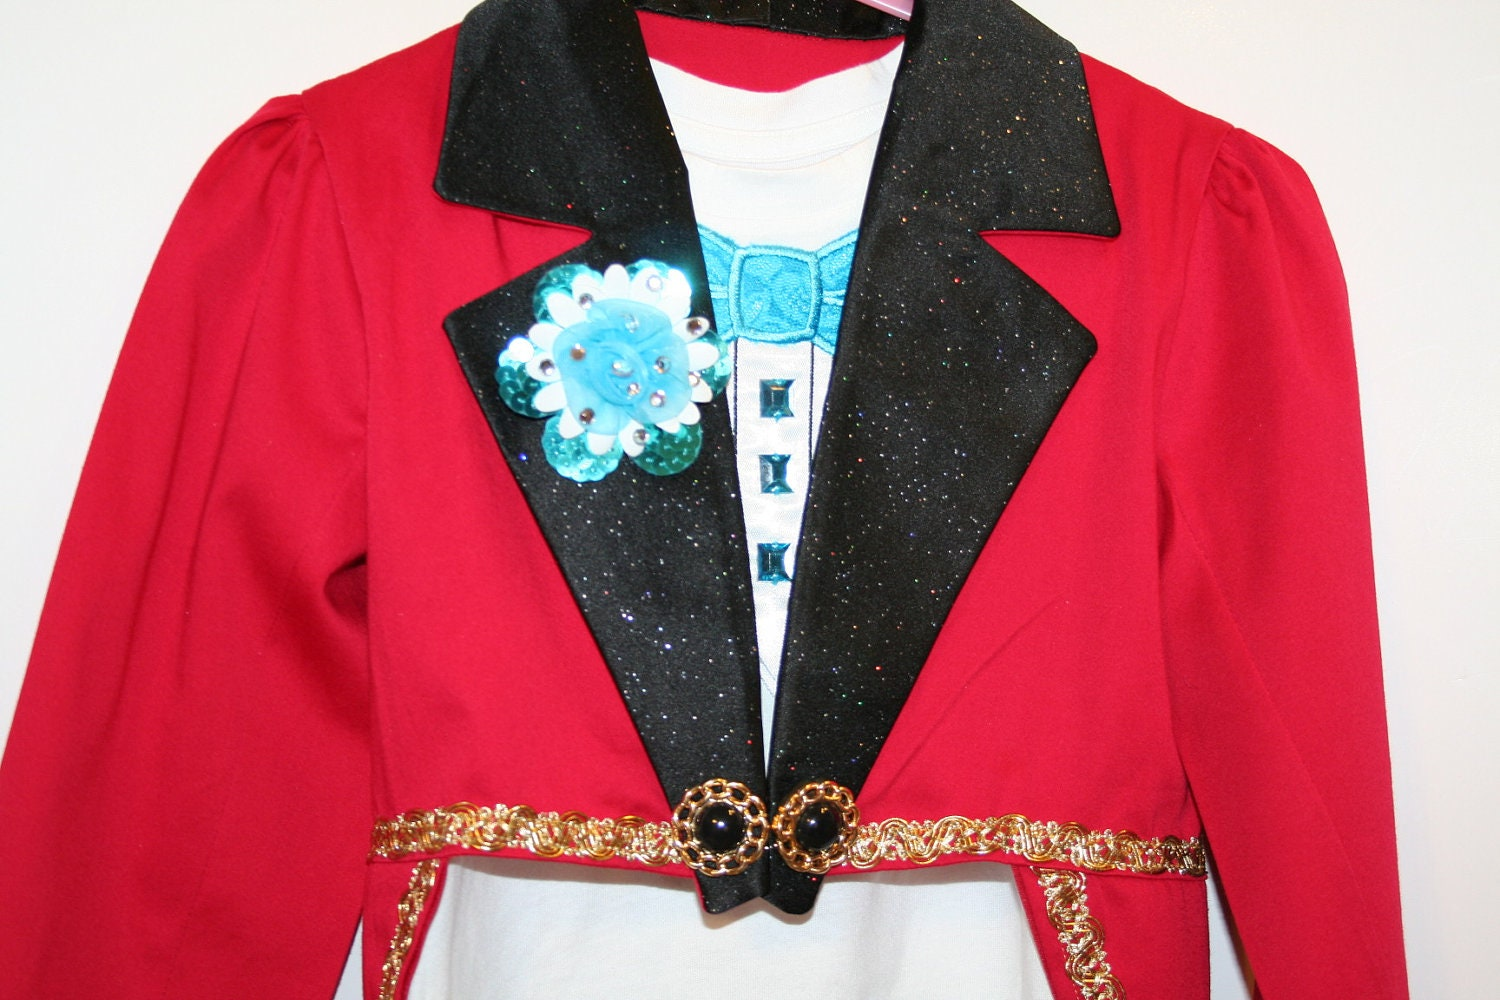 This two piece costume features a neoprene ringmaster tuxedo jacket with dazzling sequin spandex collar, cuffs and contrast lining with decorative gold buttons in front. Includes a cotton rib-knit tank top.